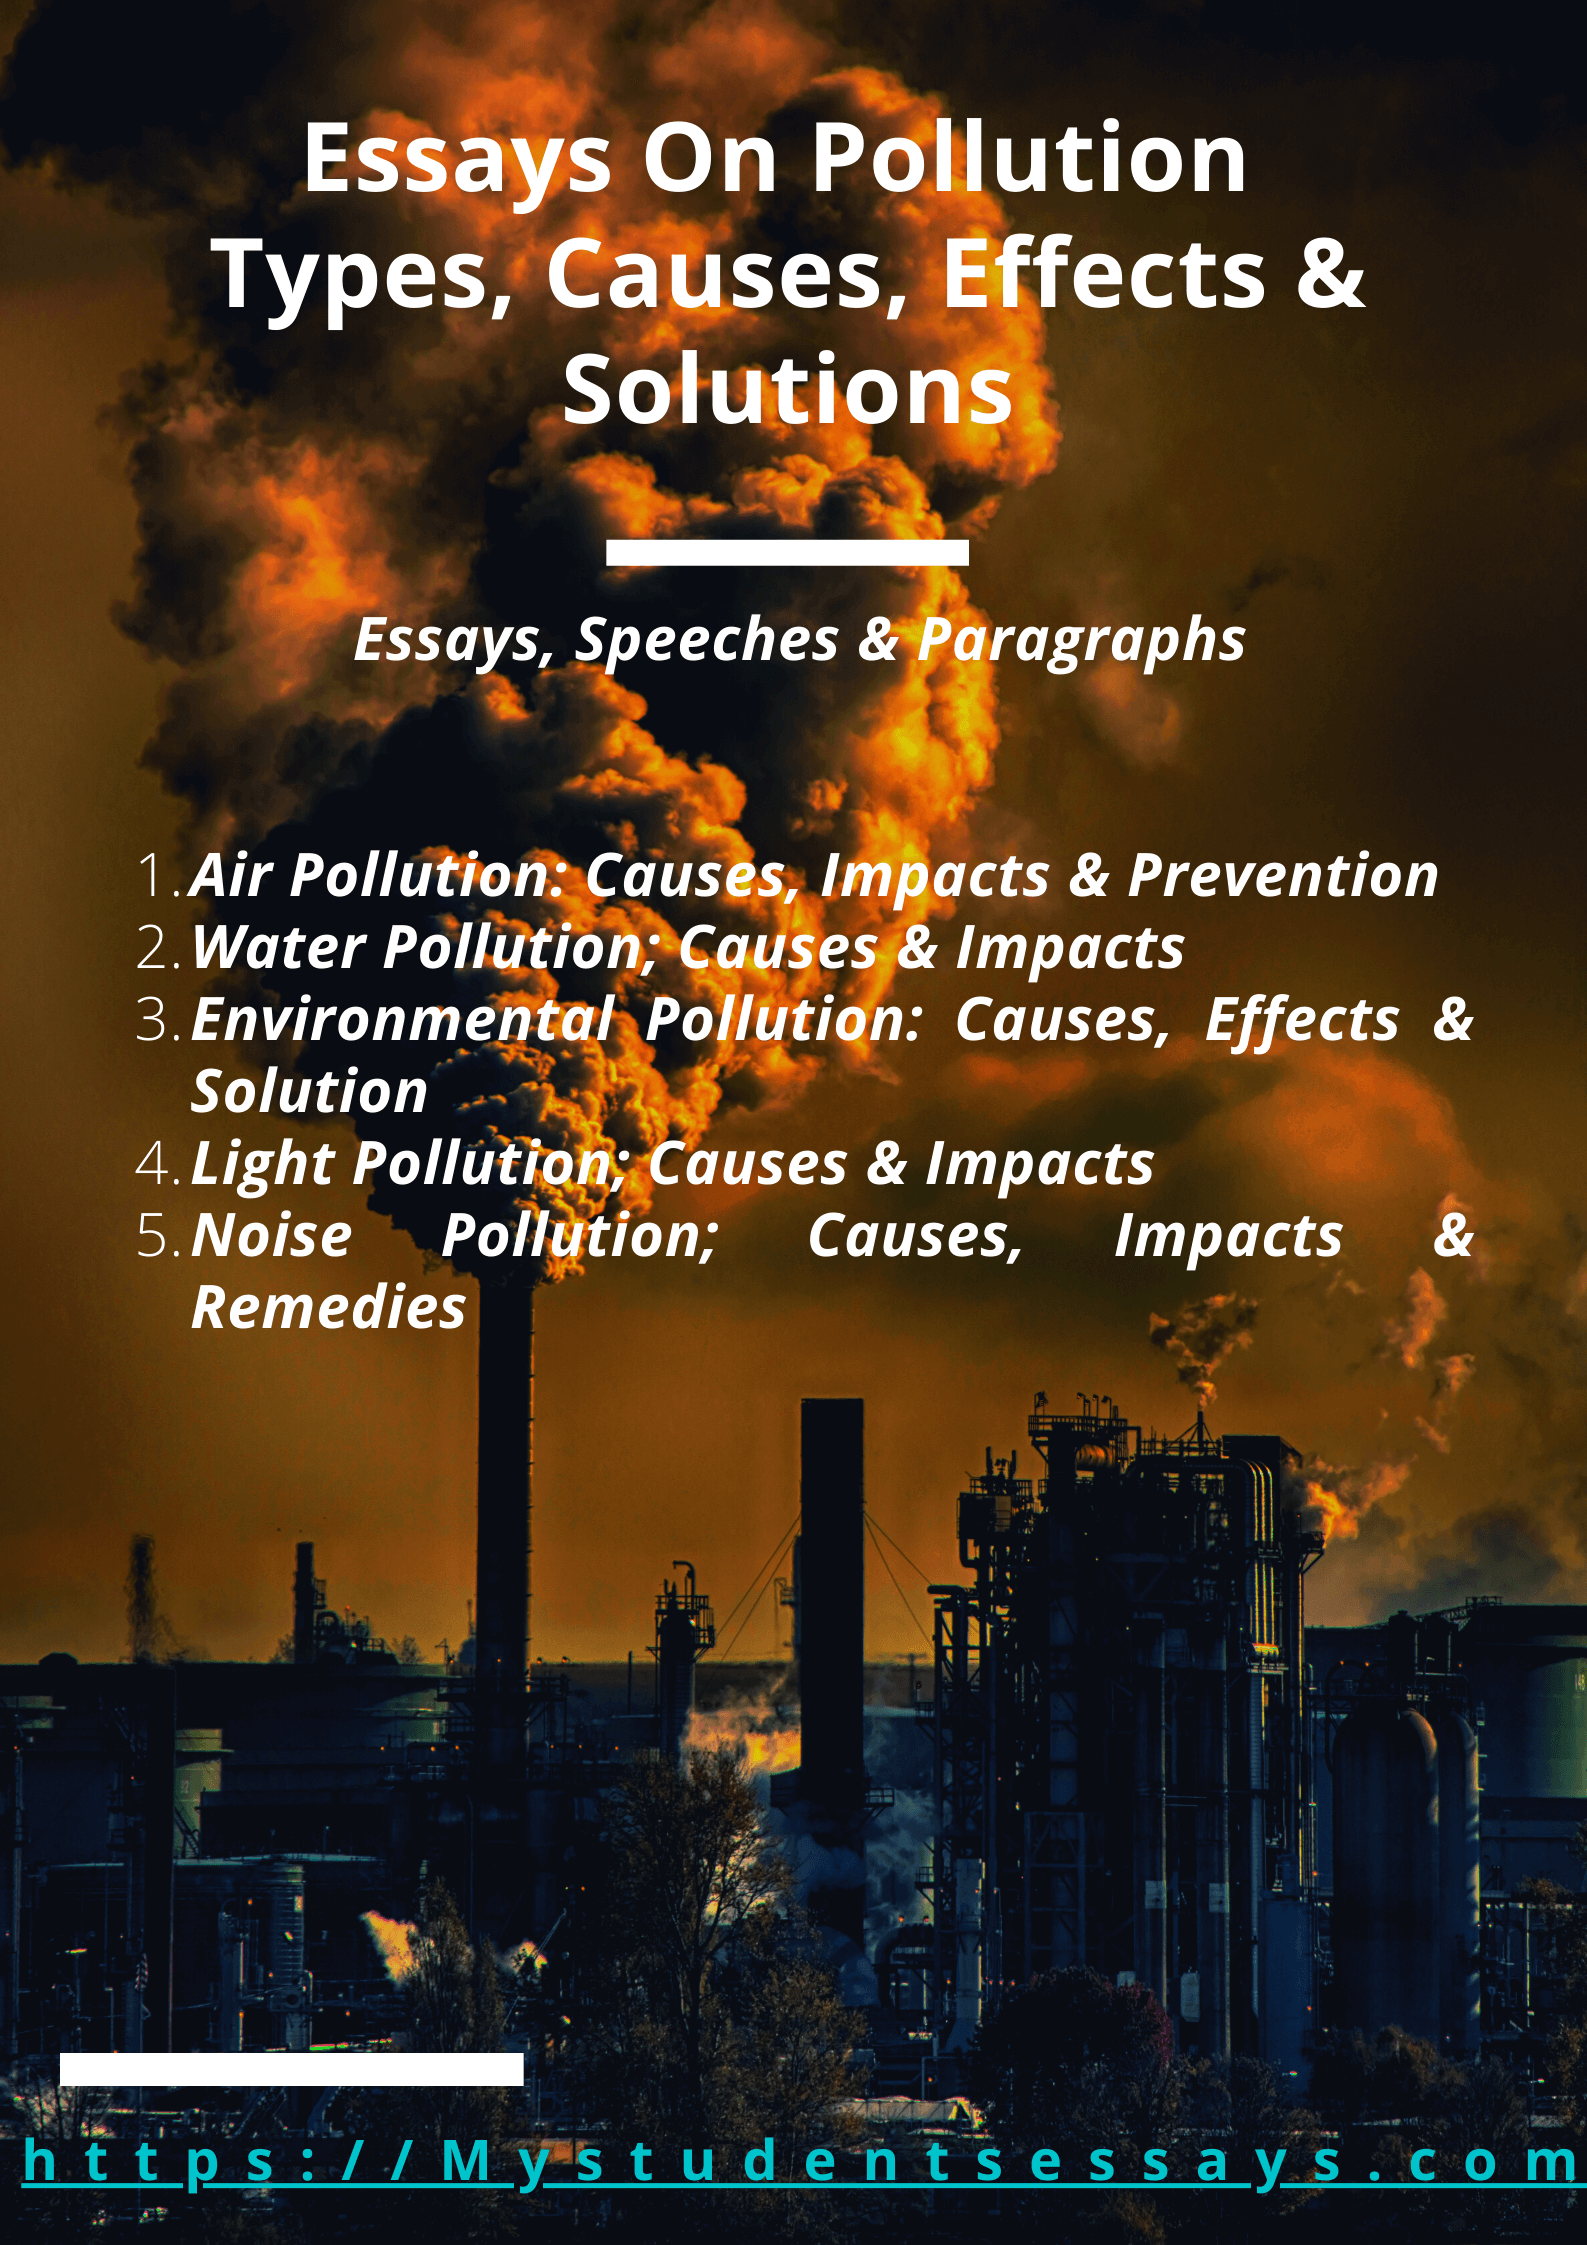 Essays on Pollution, Types, Causes, Impacts & Solution